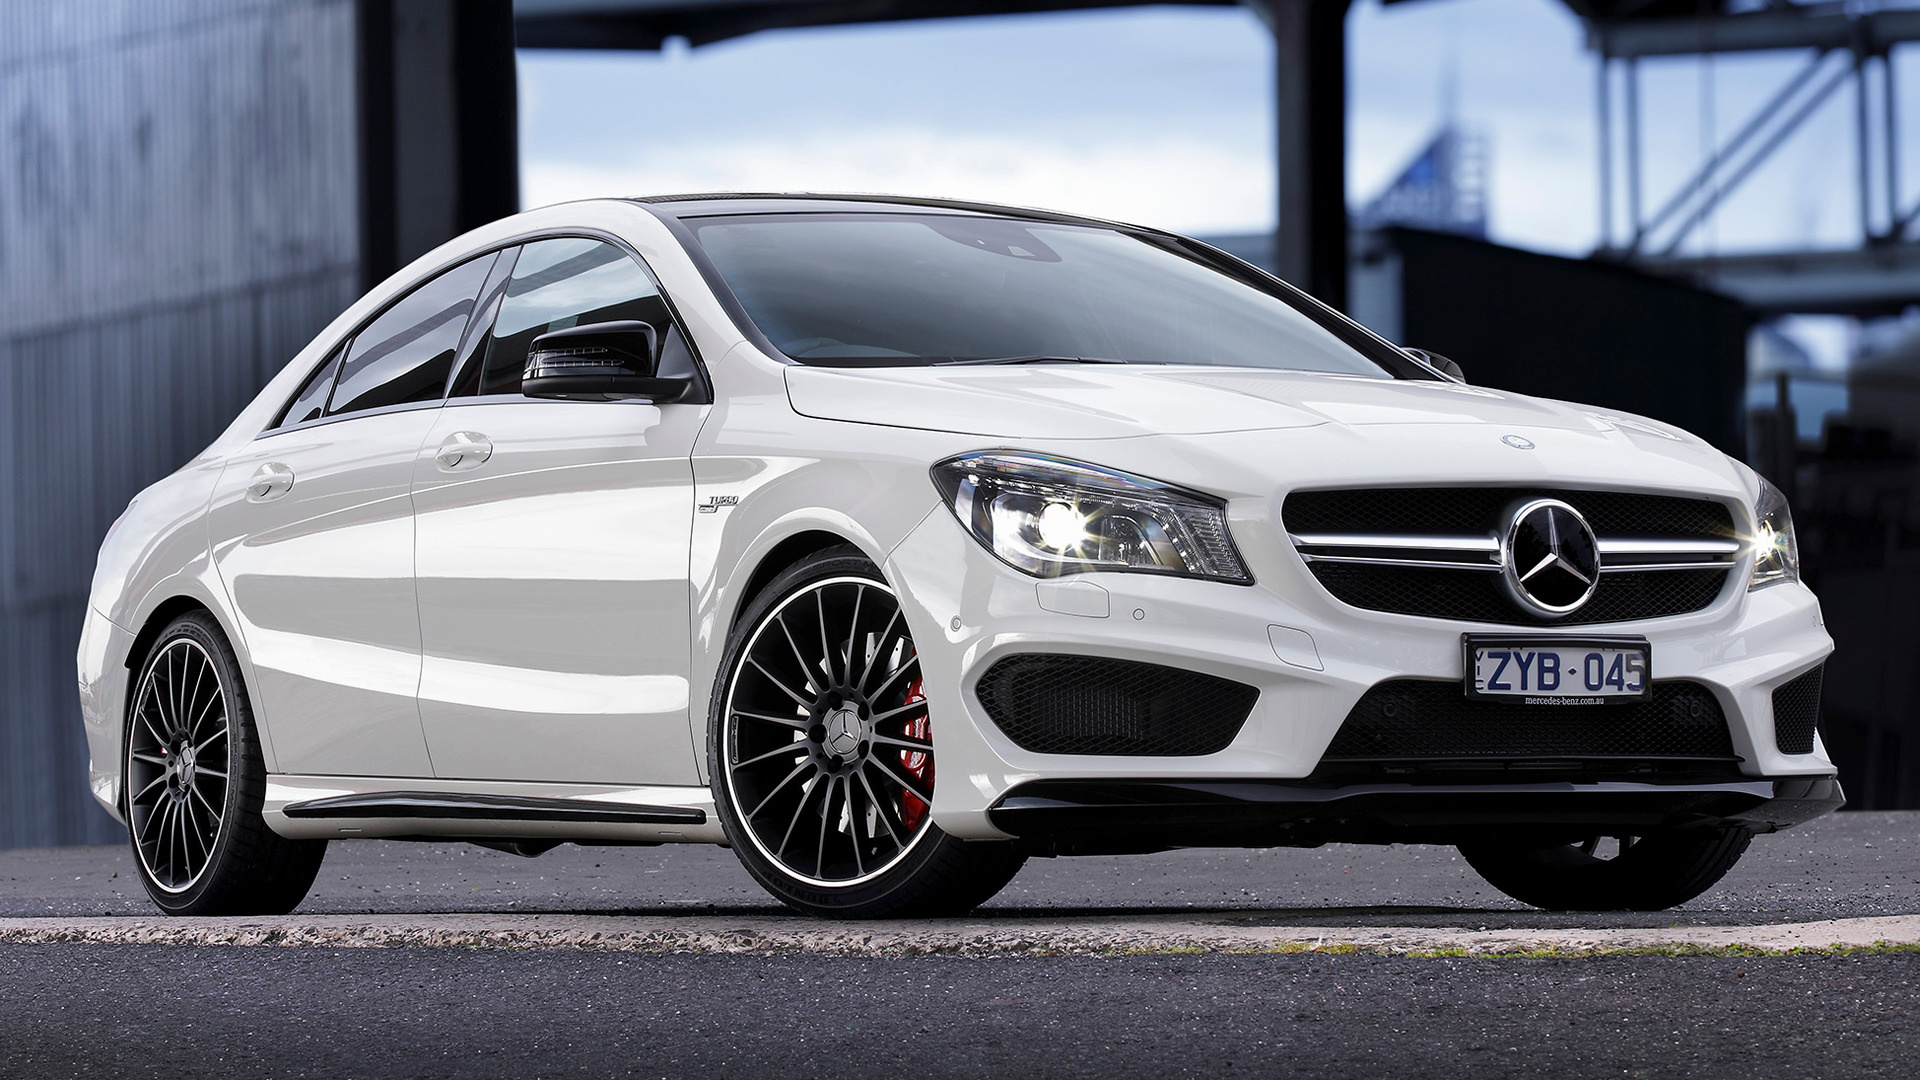 Mercedes Benz Cla 45 Amg 2013 Au Wallpapers And Hd